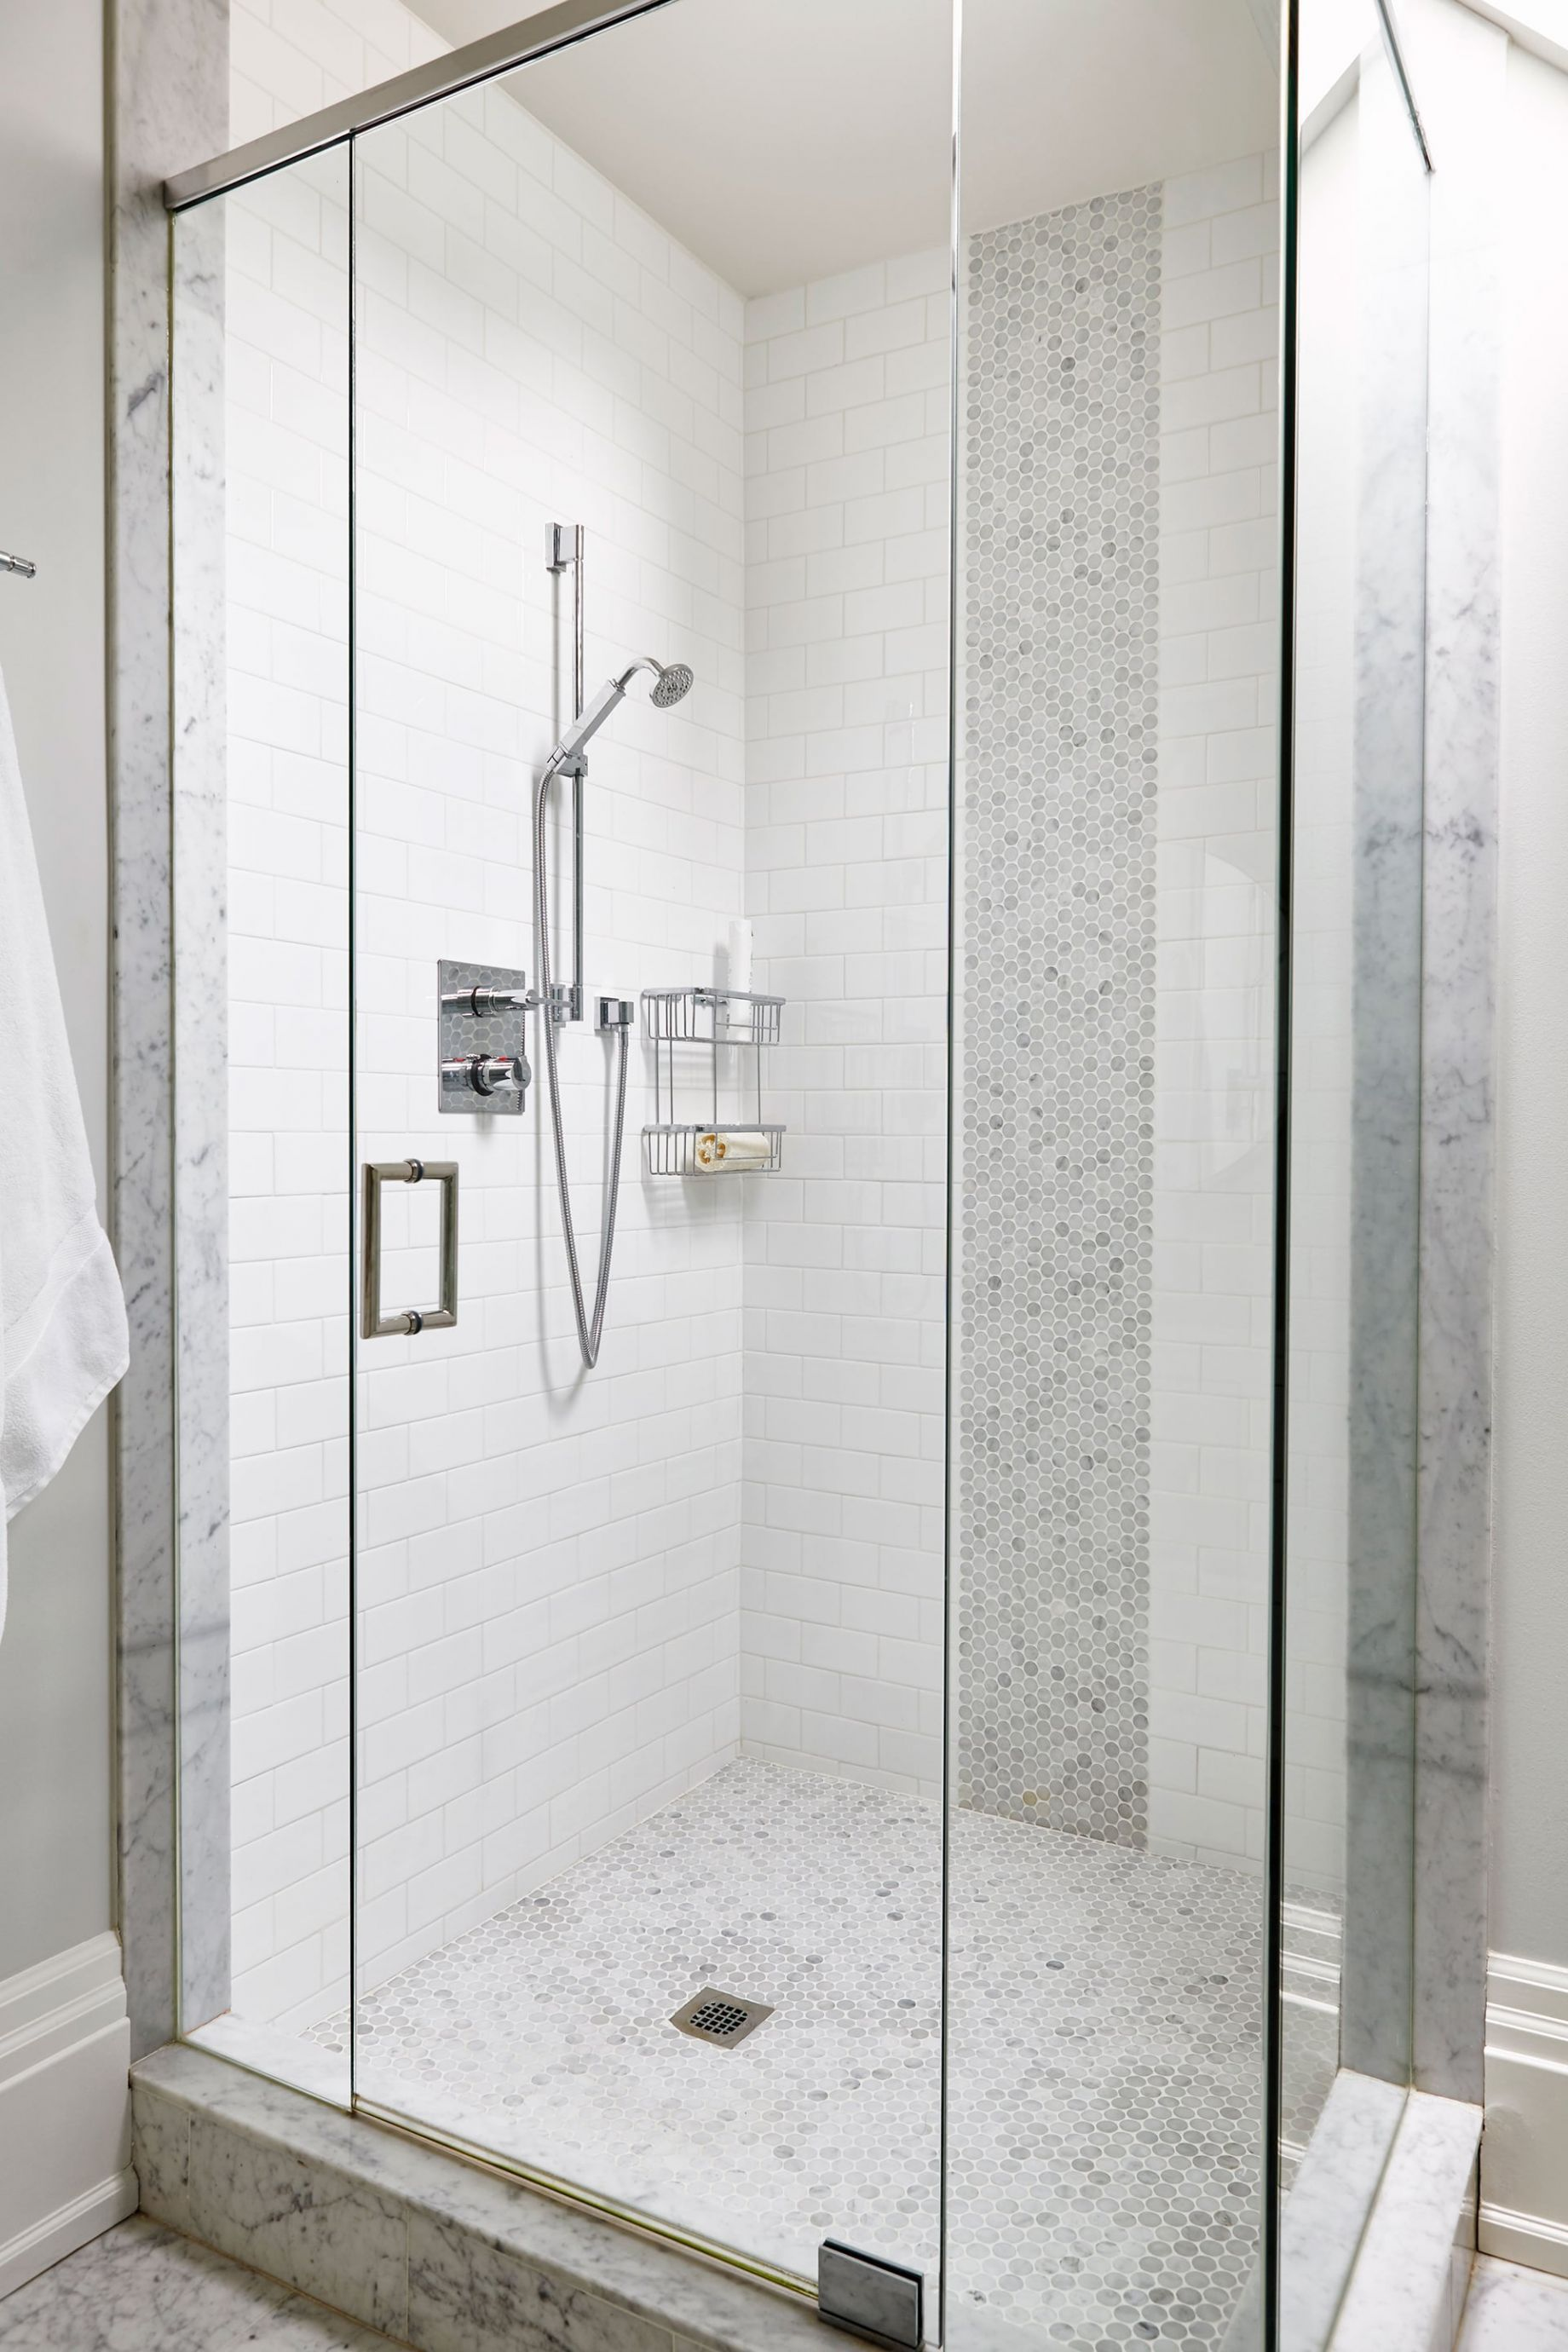 Stand up shower incased in glass | Master bath | Pinterest | Twins ...